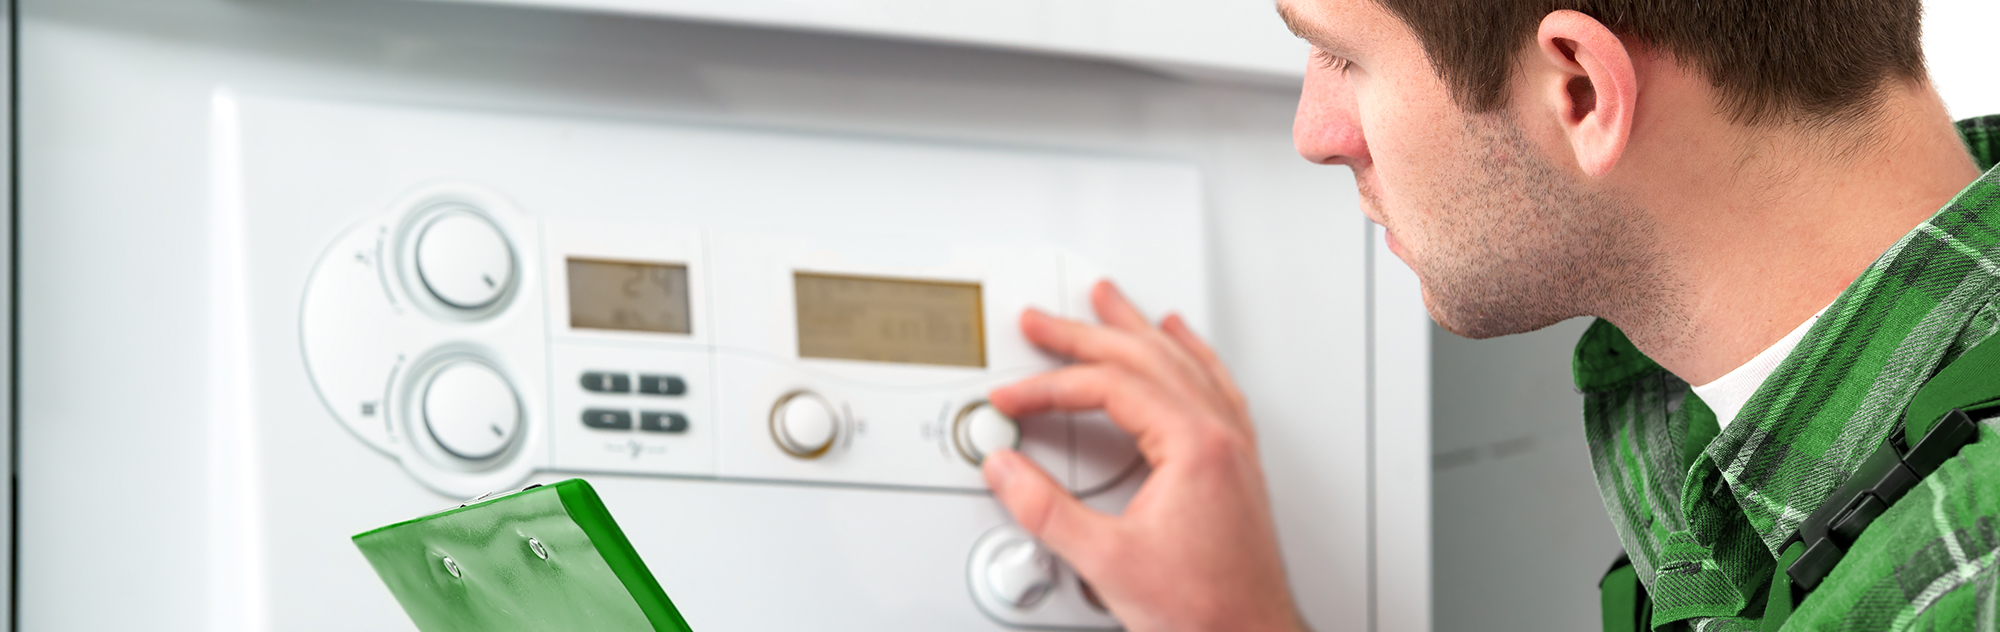 Turn to Us for Reliable Heating Repair in the Bronx, NY